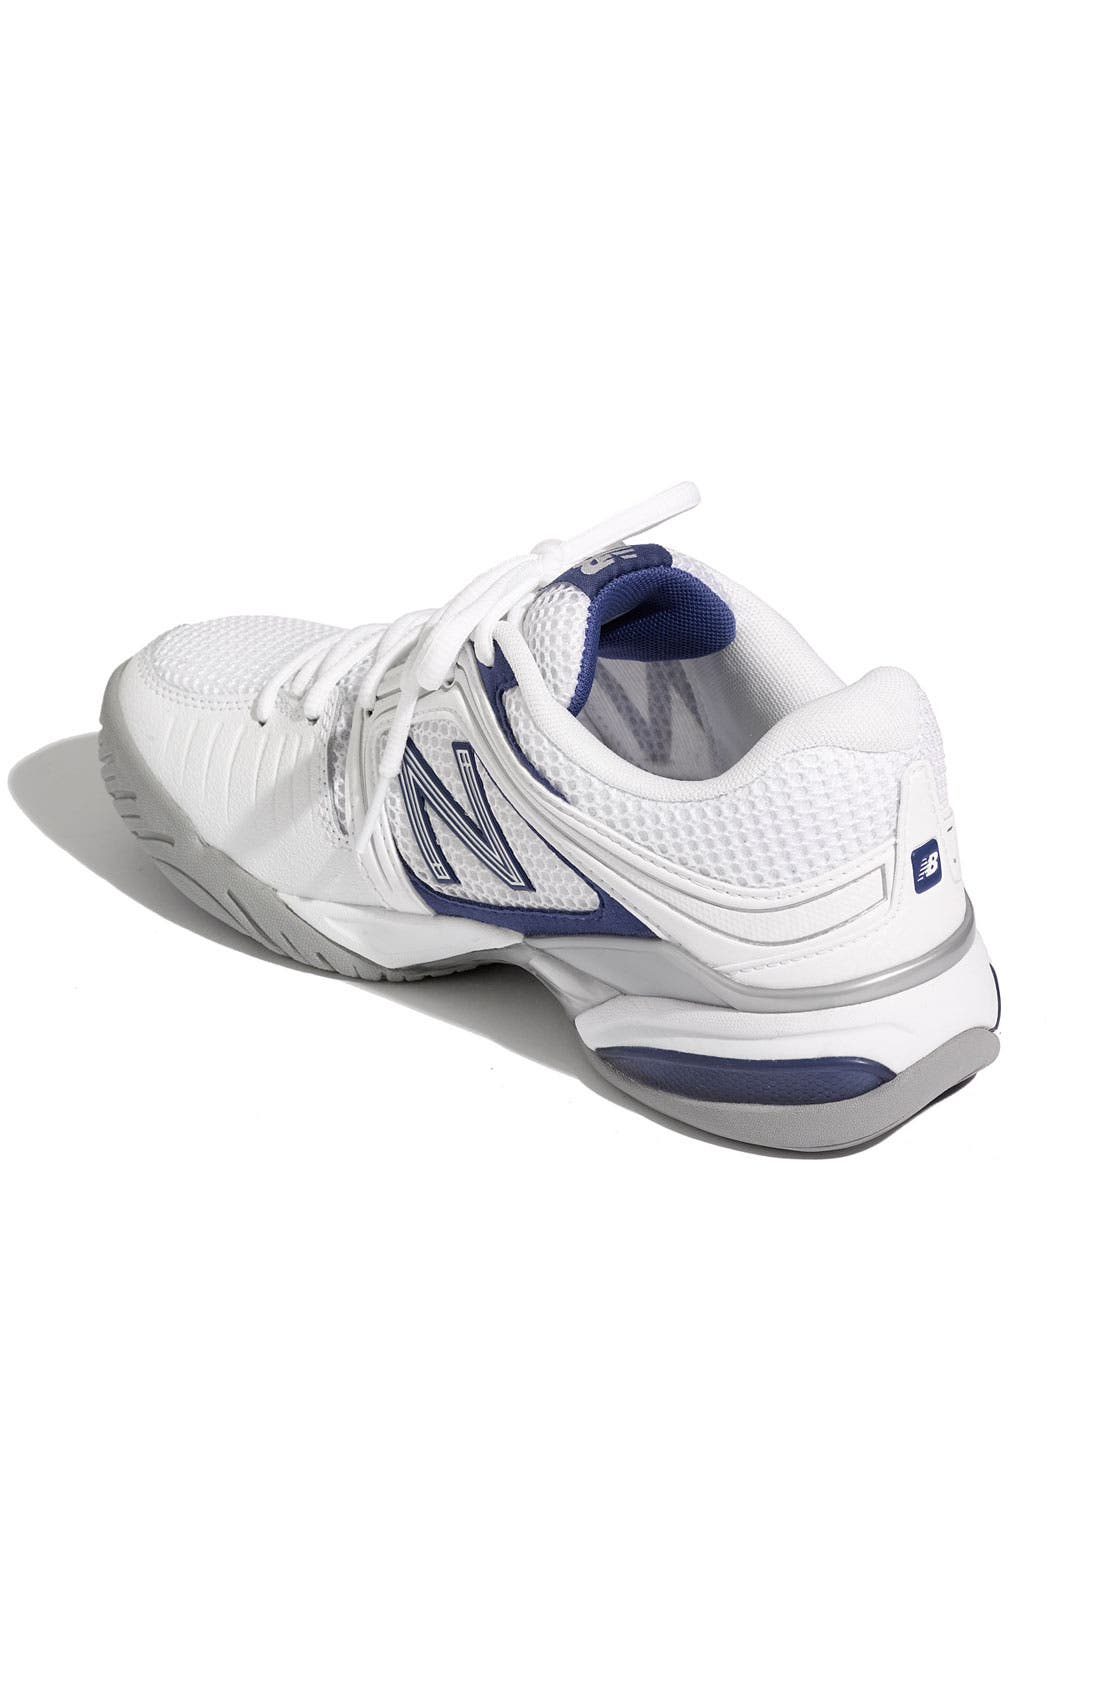 Alternate Image 2  - New Balance '1005' Tennis Shoe (Women)(Retail Price: $114.95)